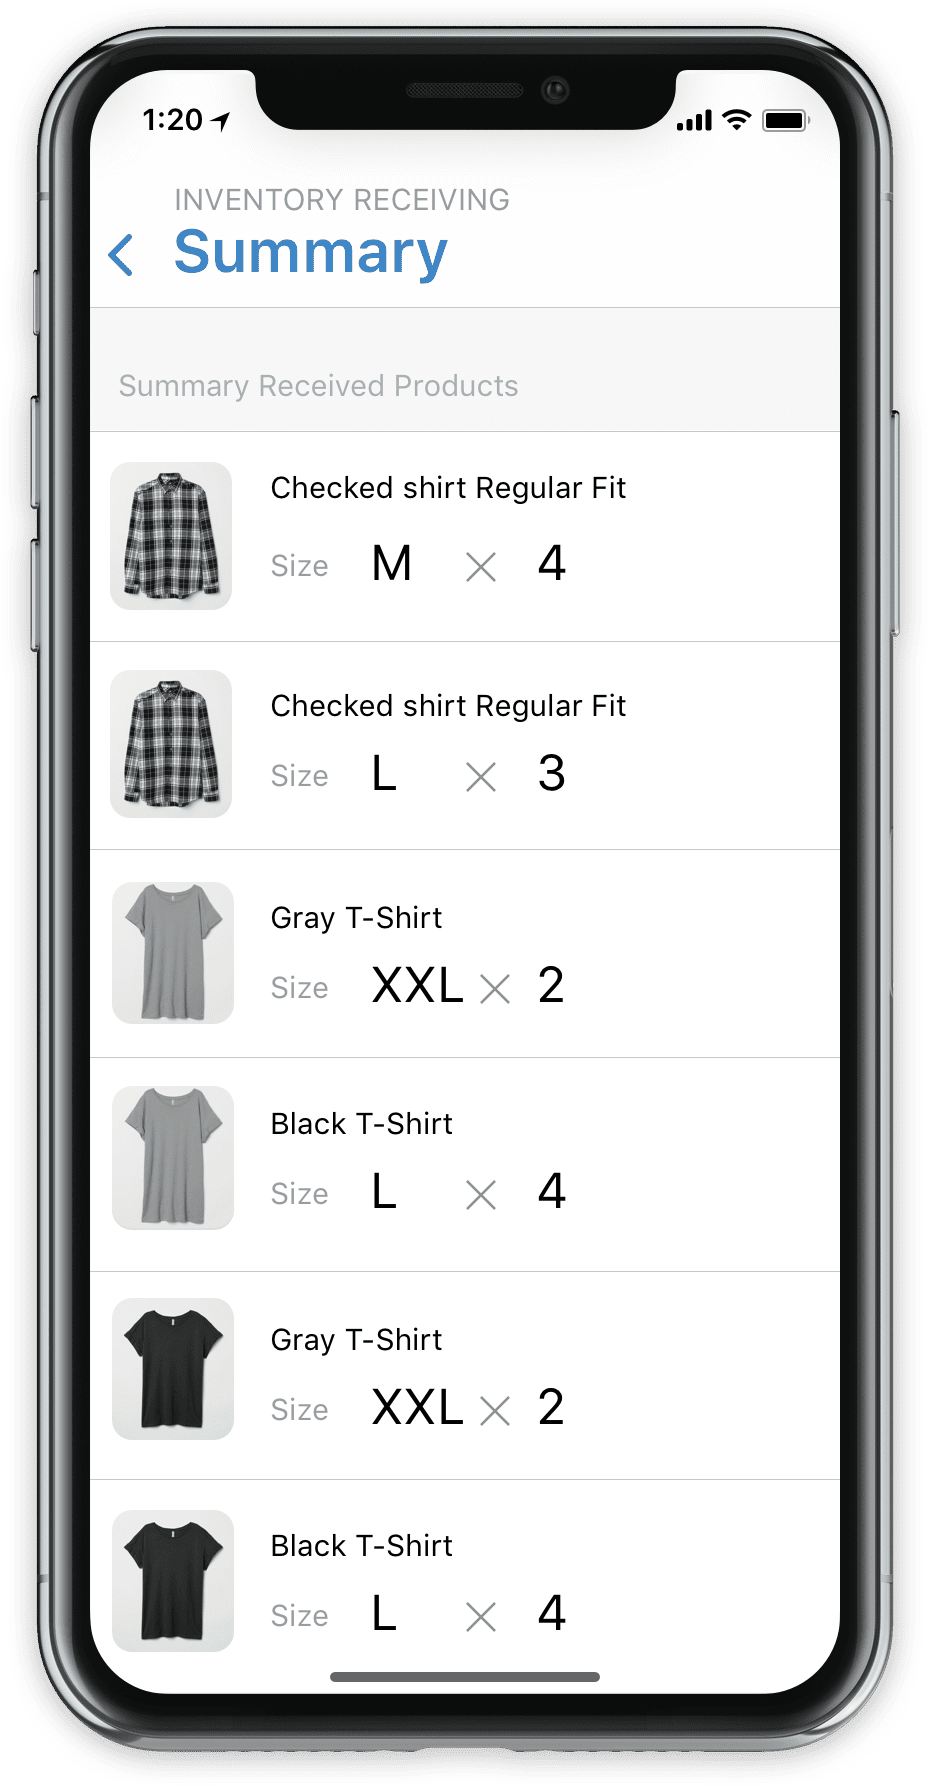 inventory app on iphone